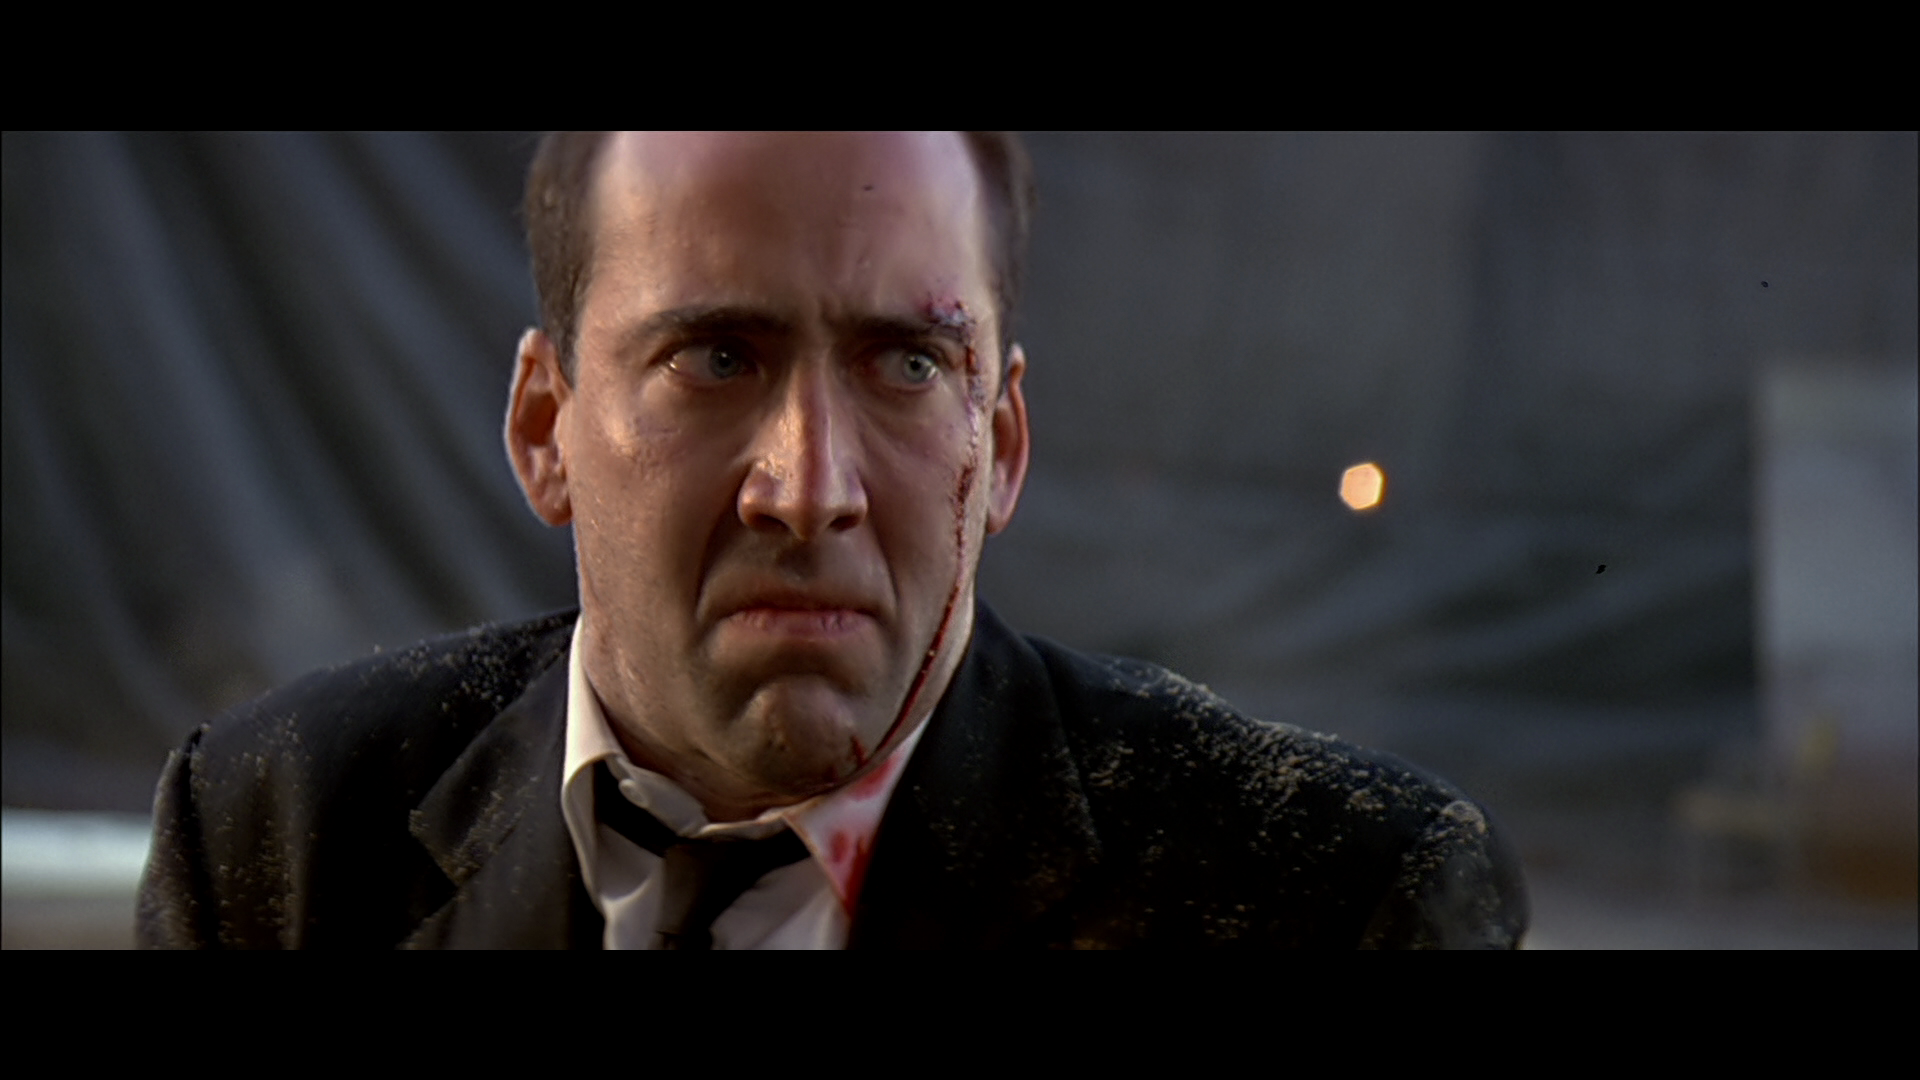 Nicolas Cage Face Off No Face I Talked To One...